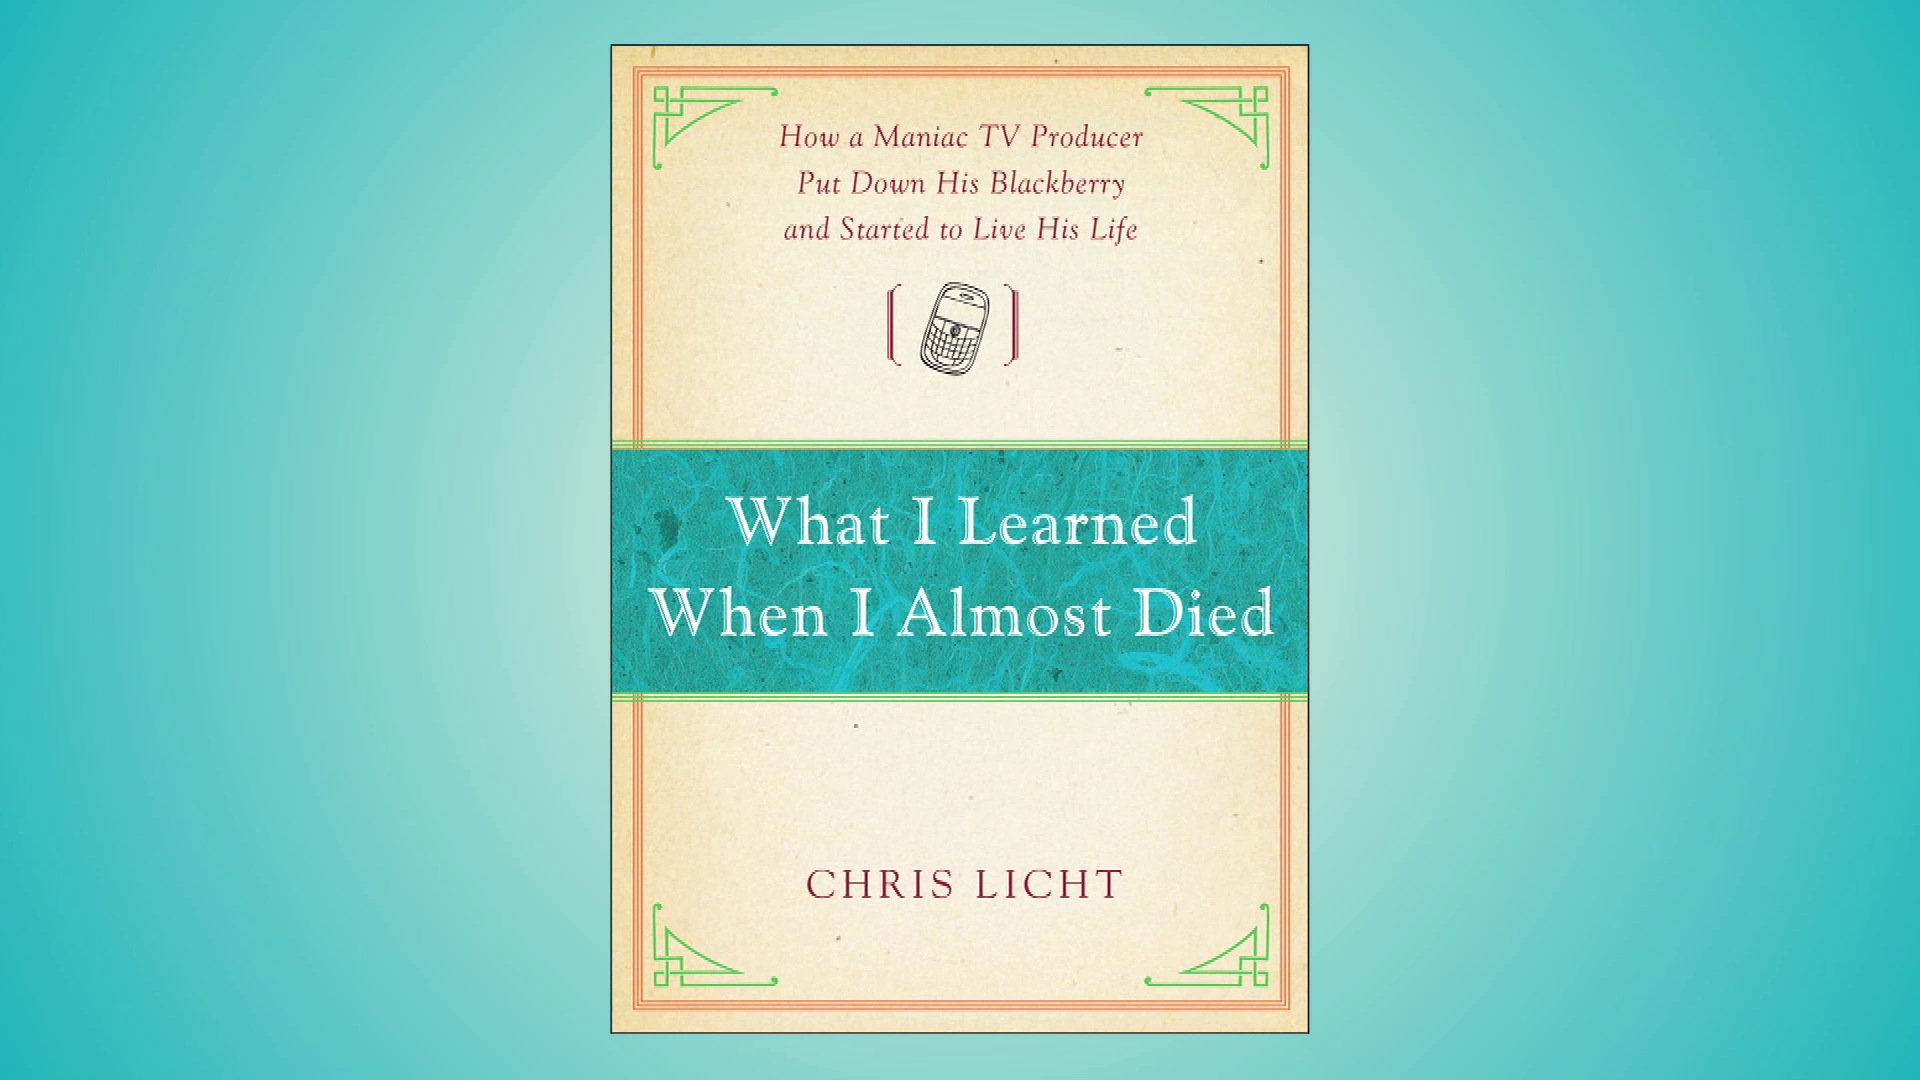 Chris Licht: What I Learned When I Almost Died